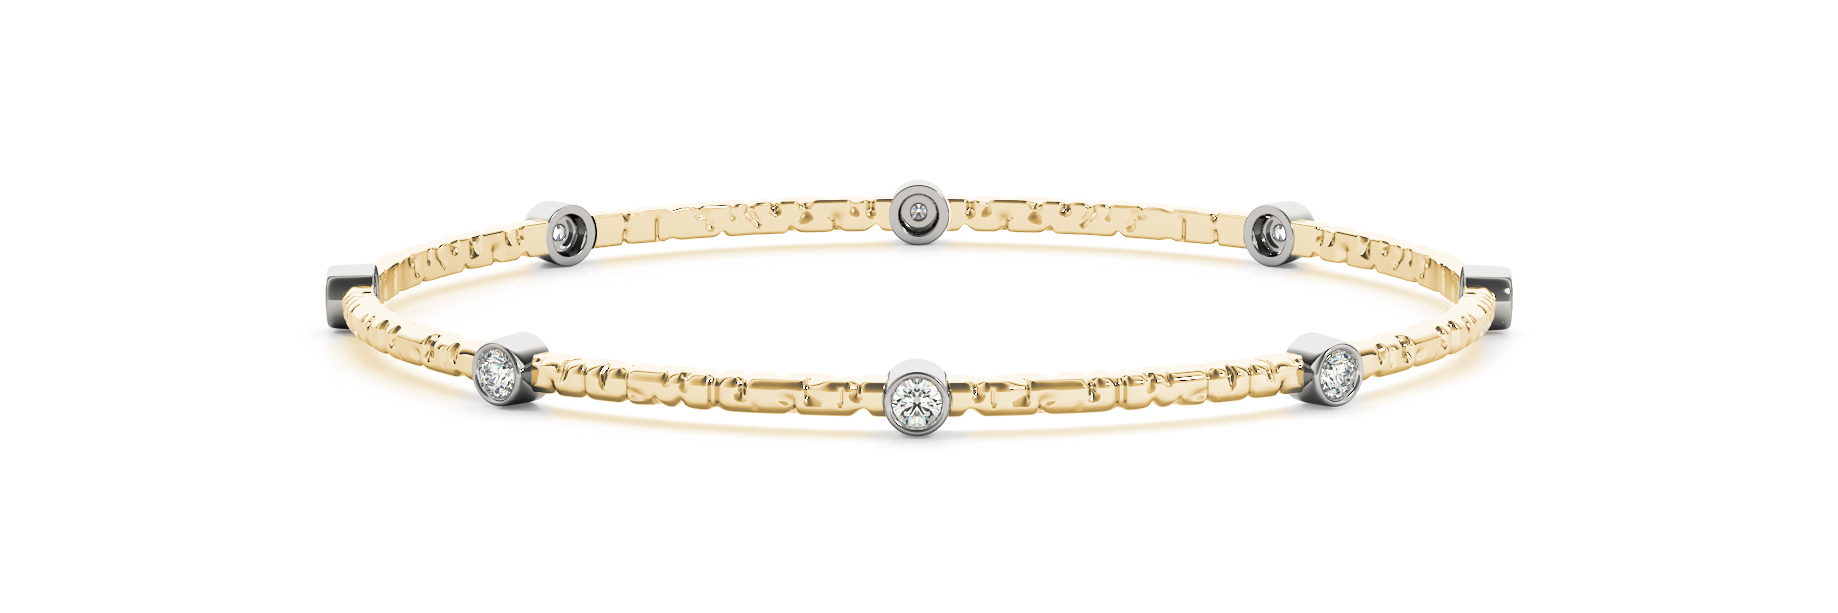 0.56 Carat Round Diamond Bangle in Yellow Gold